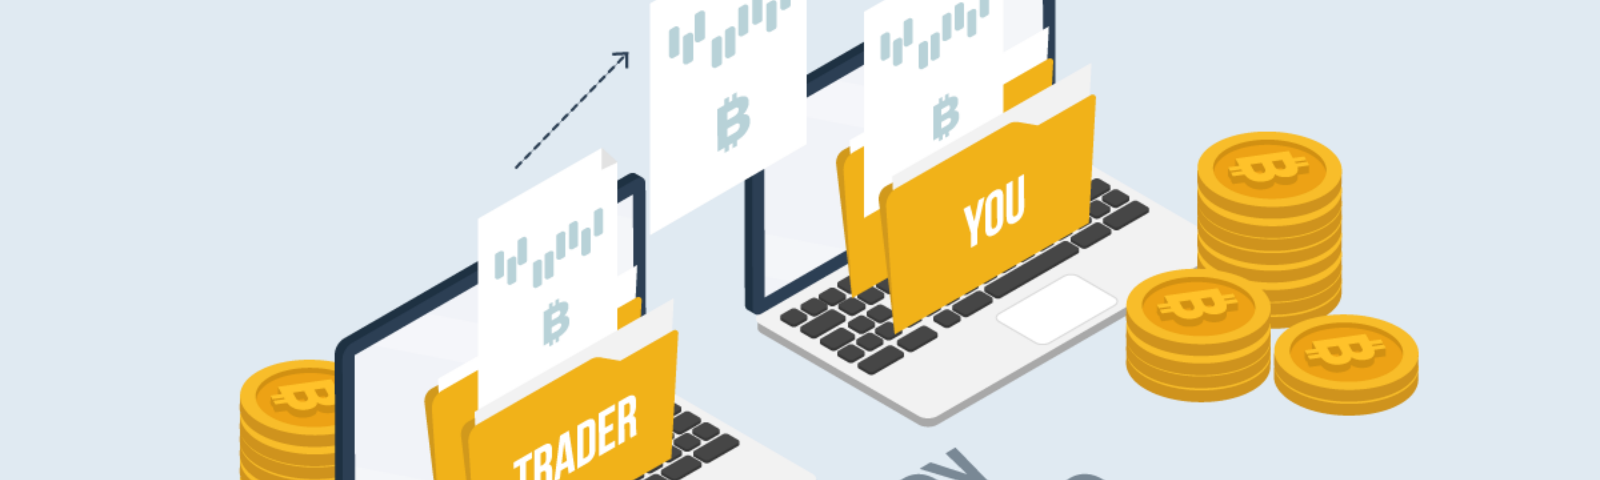 How to choose best copy trading platforms 2021